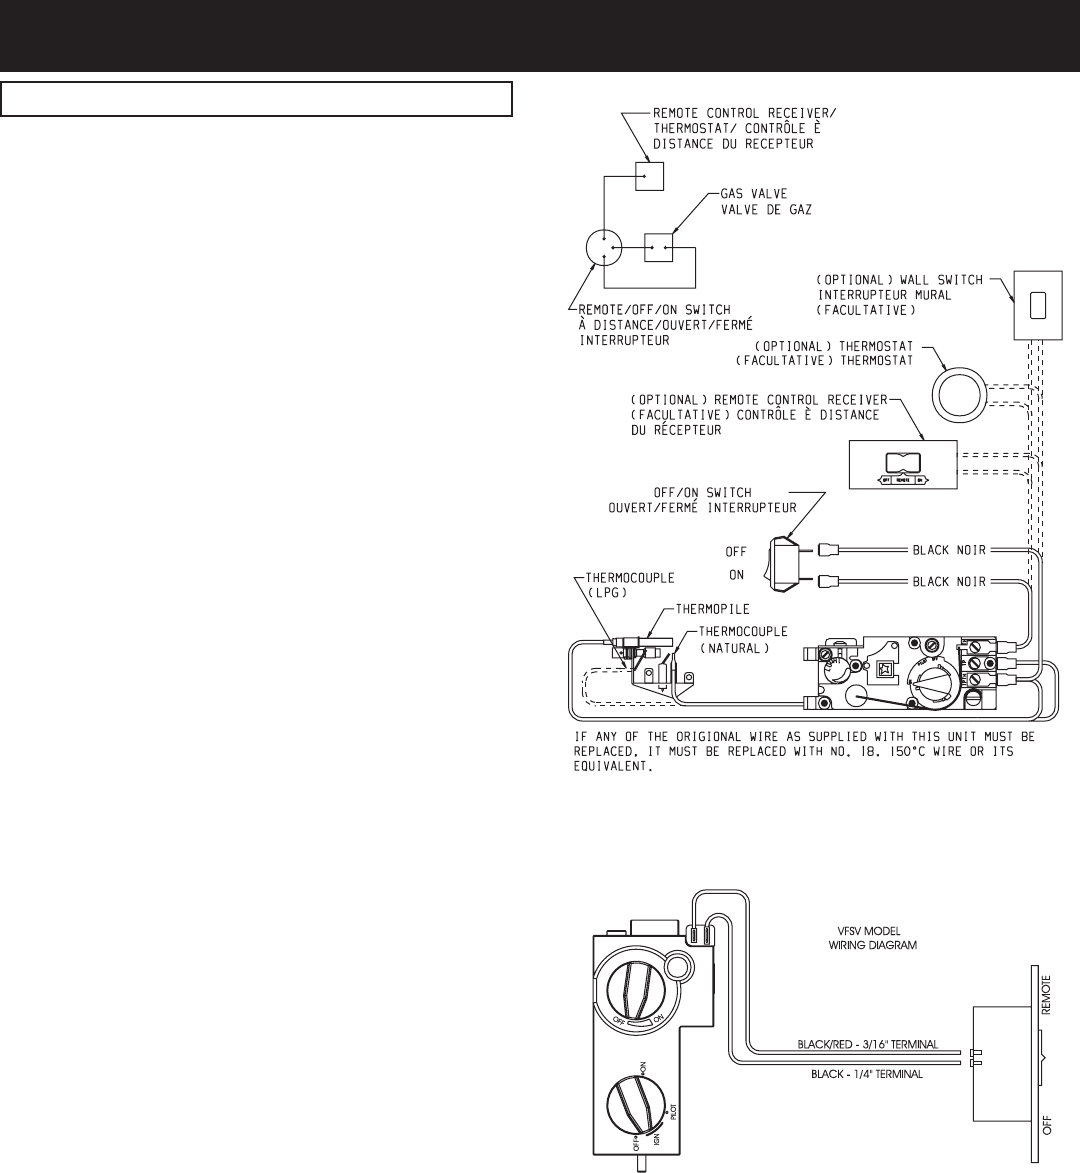 Empire Comfort Systems Vfsm 30 3 18 24 Vfsr 16 Thermopile Wiring Diagrams Page 18954 0 0705